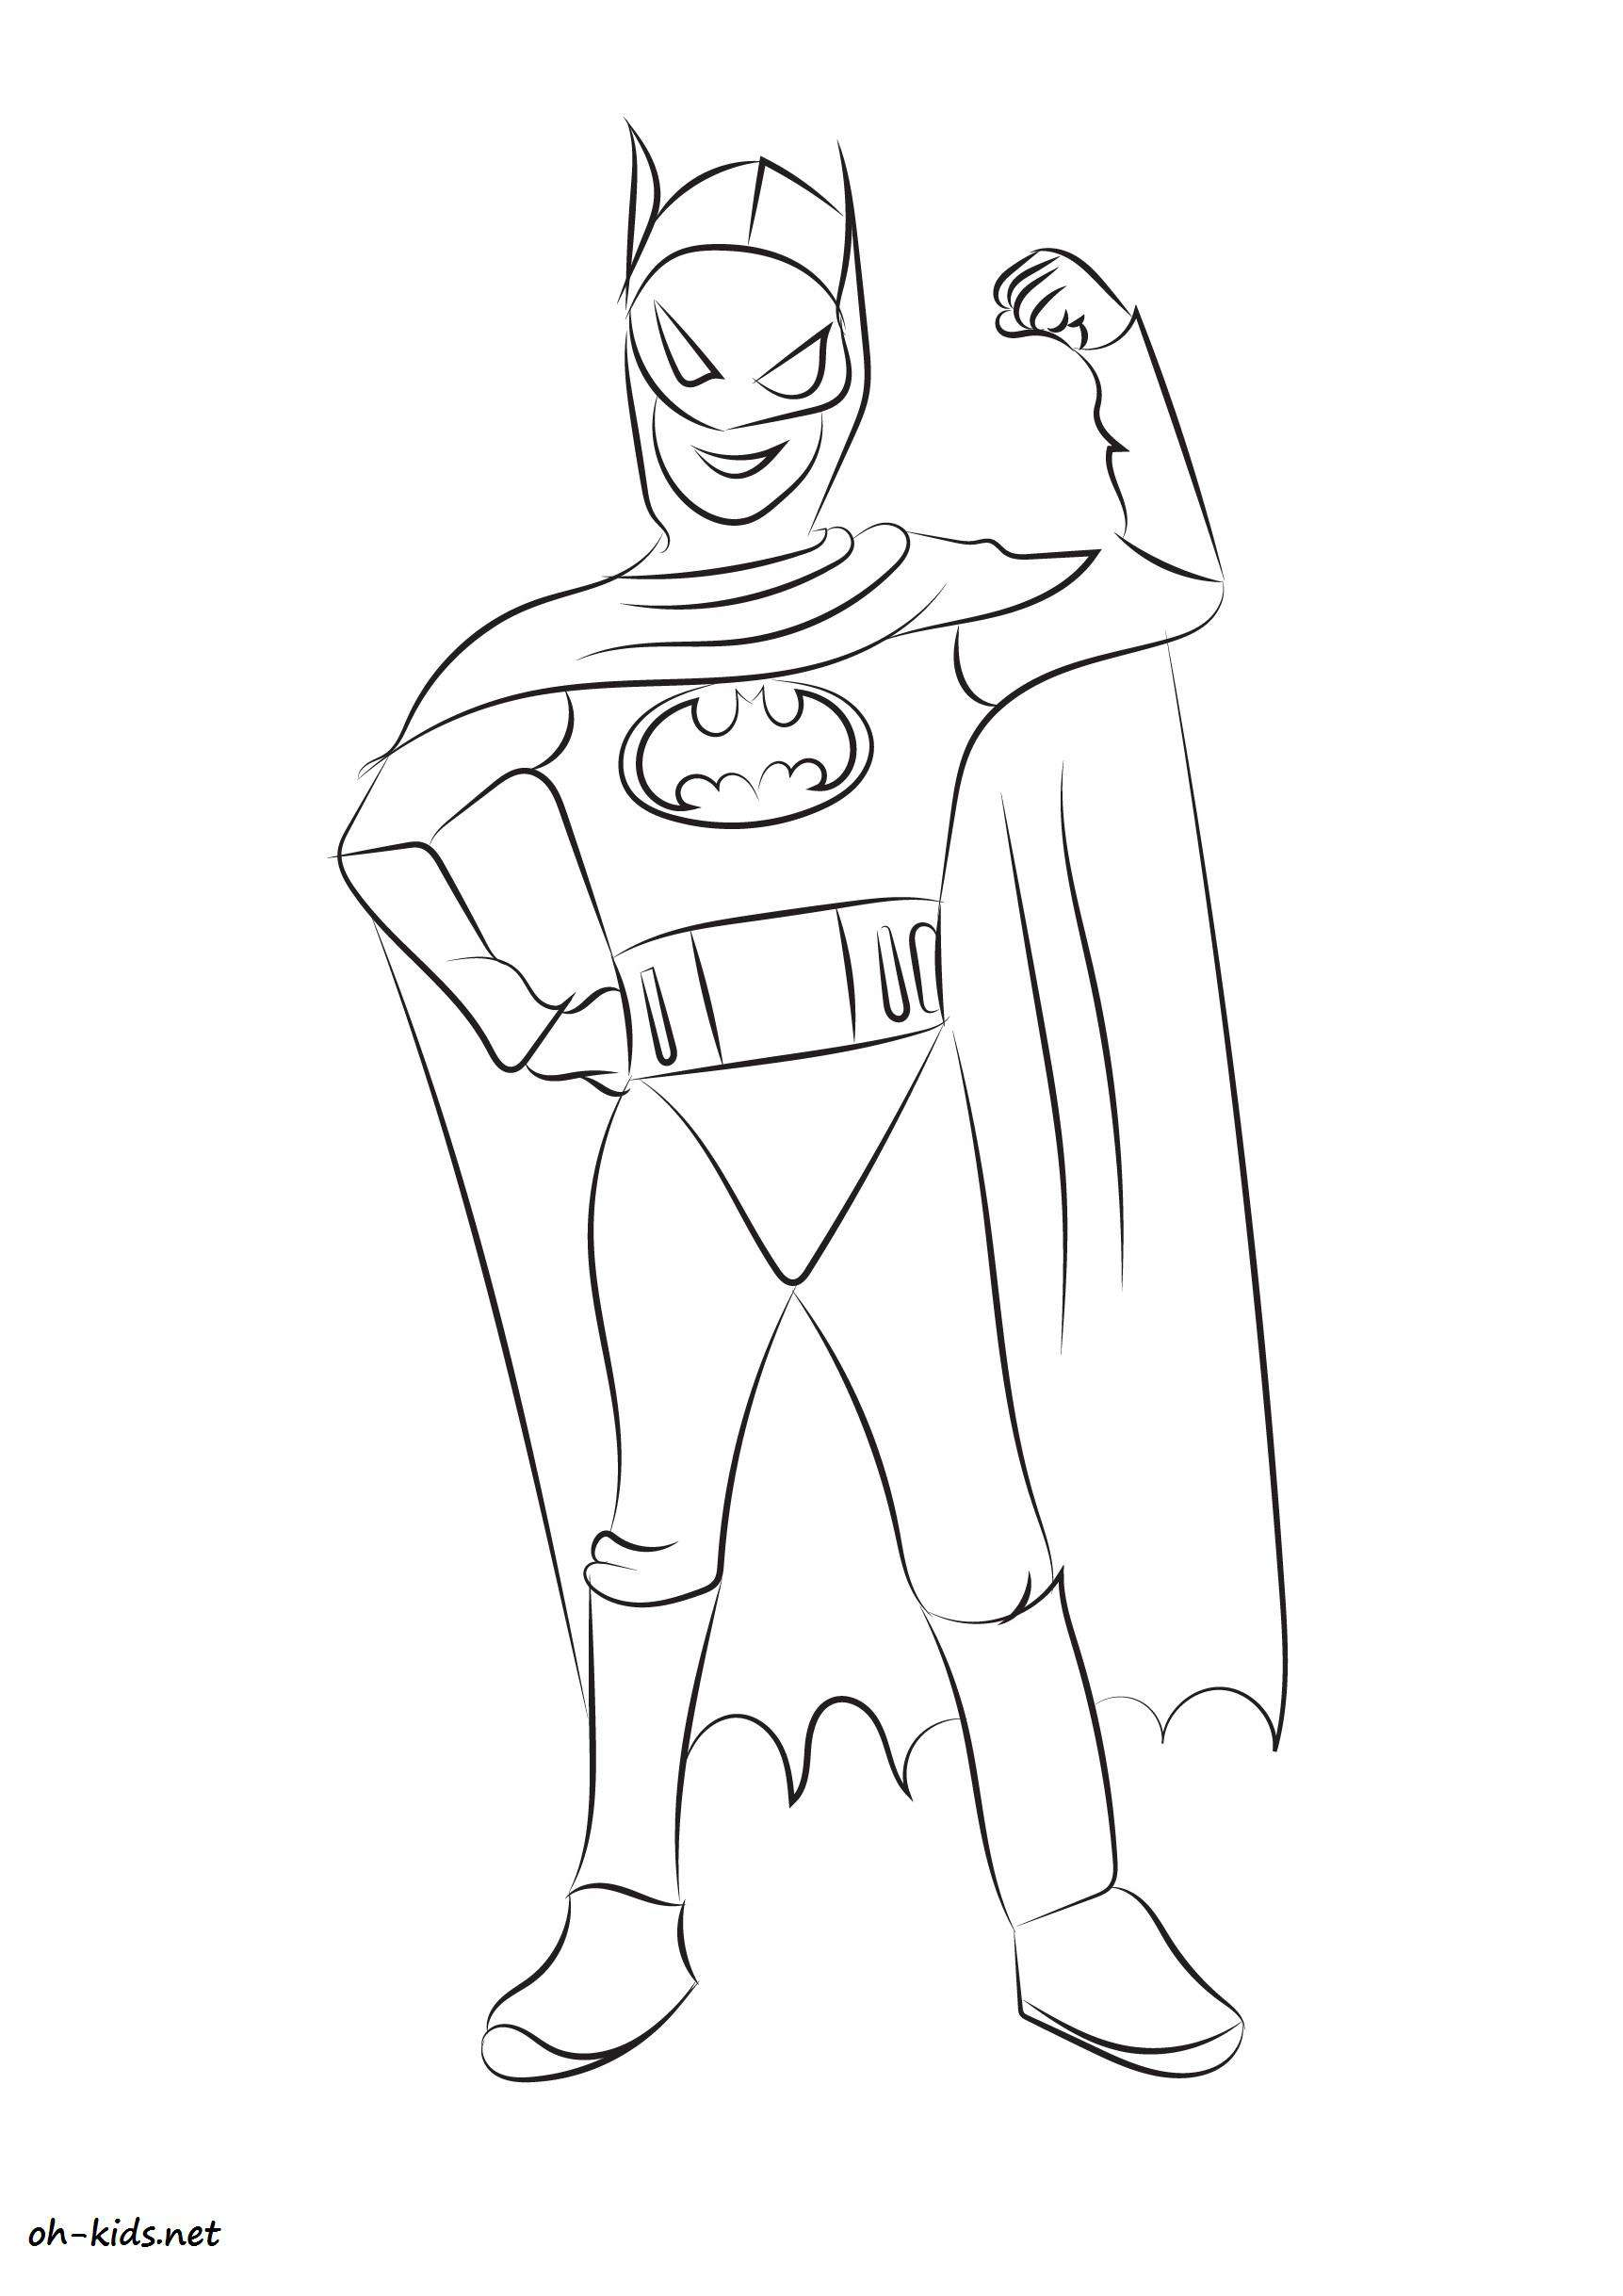 Coloriage batman oh kids fr - Coloriage a imprimer batman ...